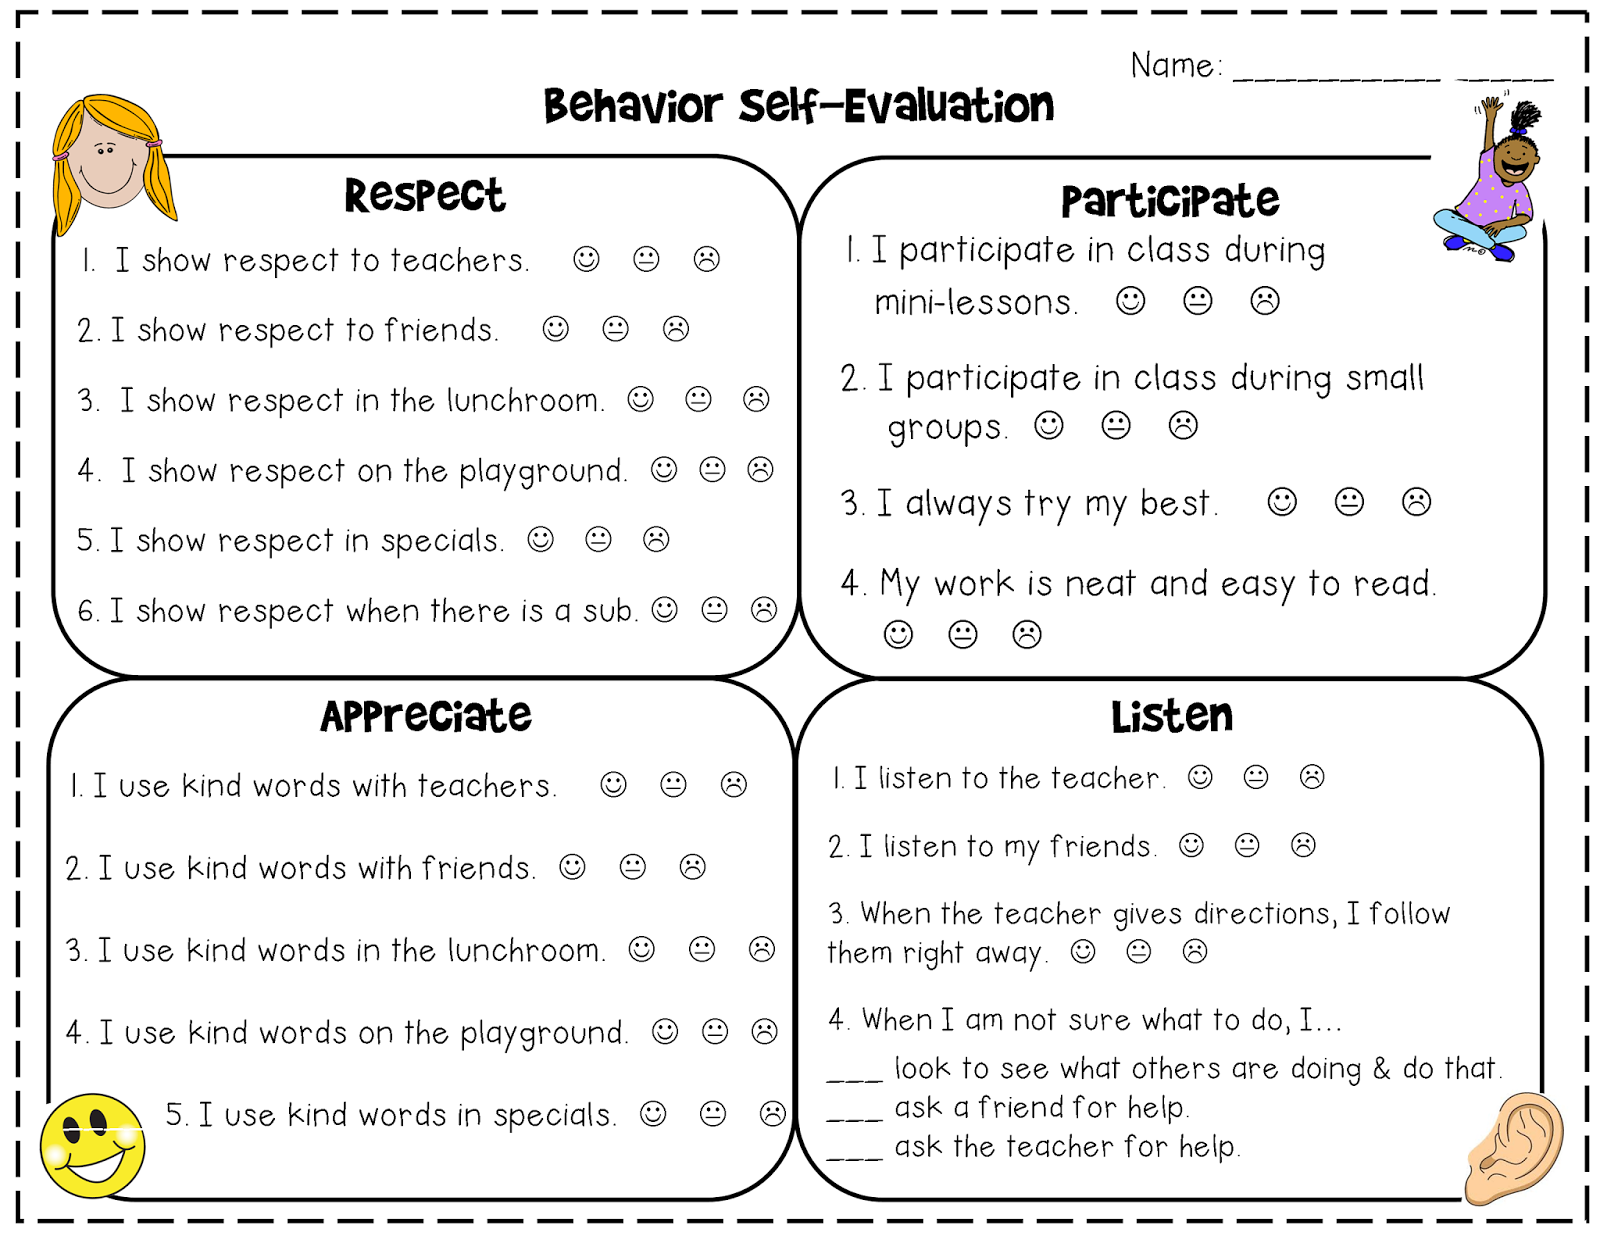 self reflection worksheet Why is student self reflection important a key goal of formative assessment and feedback is to help students develop as independent learners capable of monitoring.